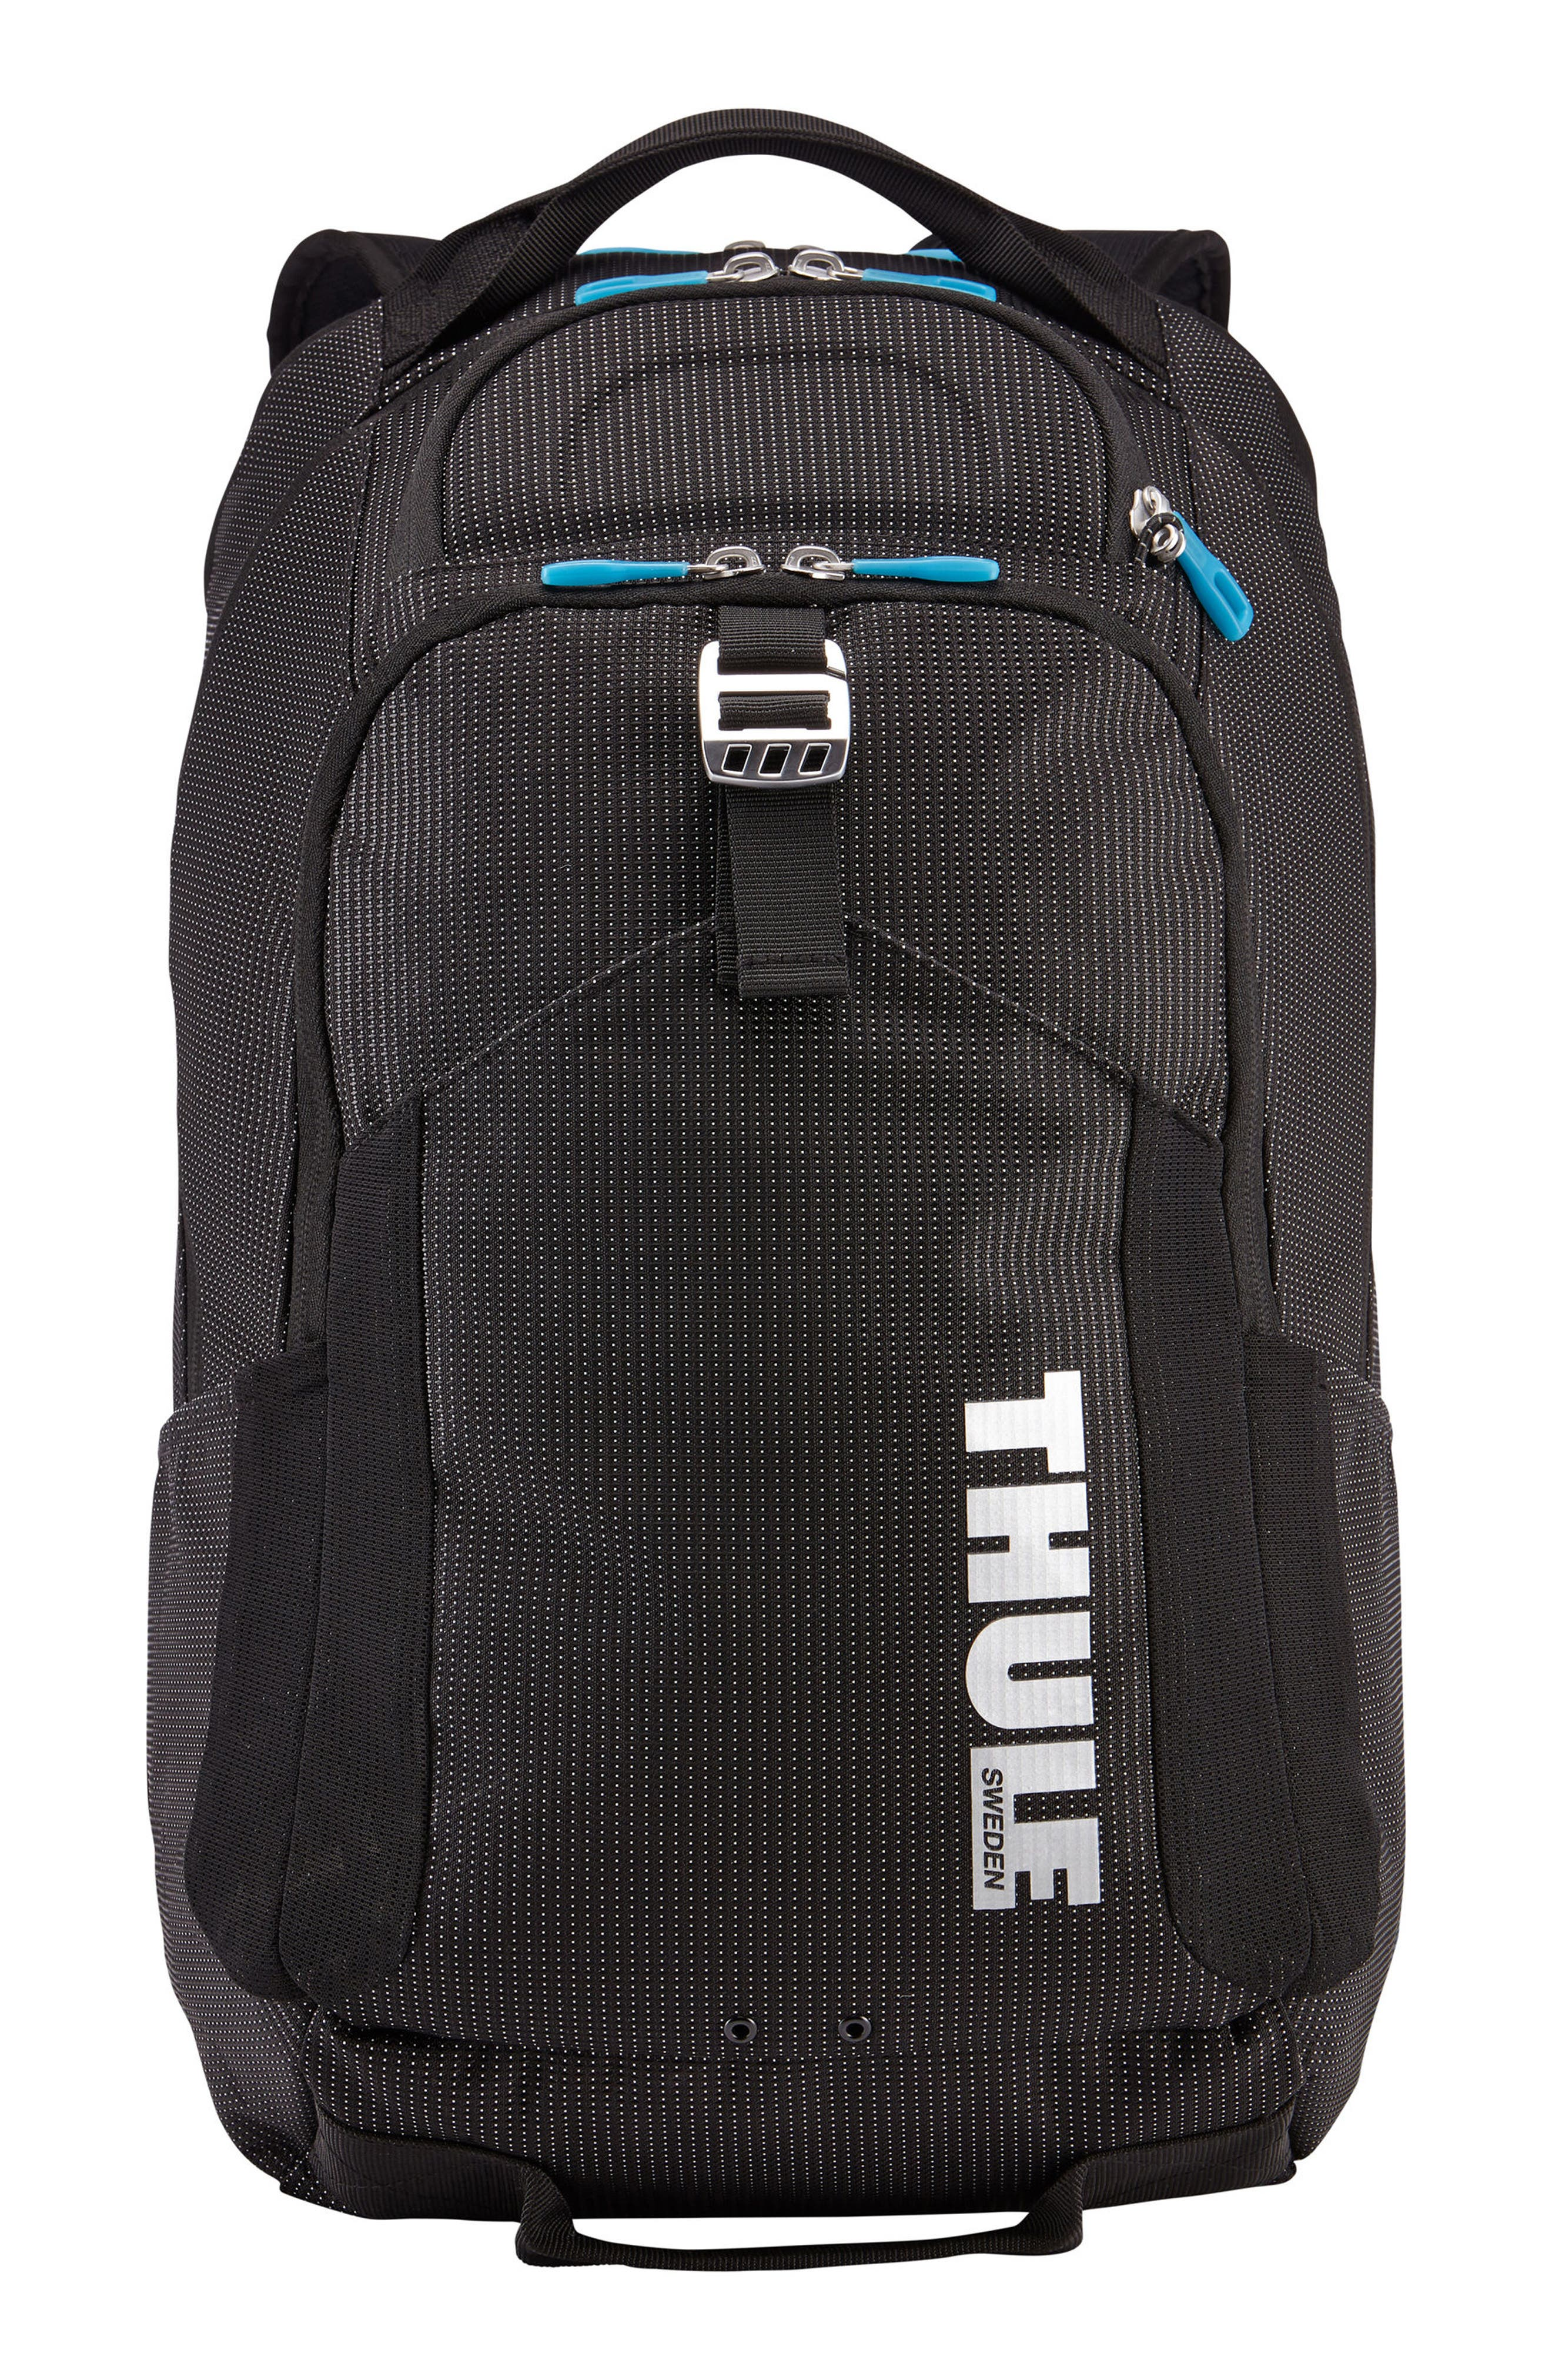 Main Image - Thule Crossover 32-Liter Backpack